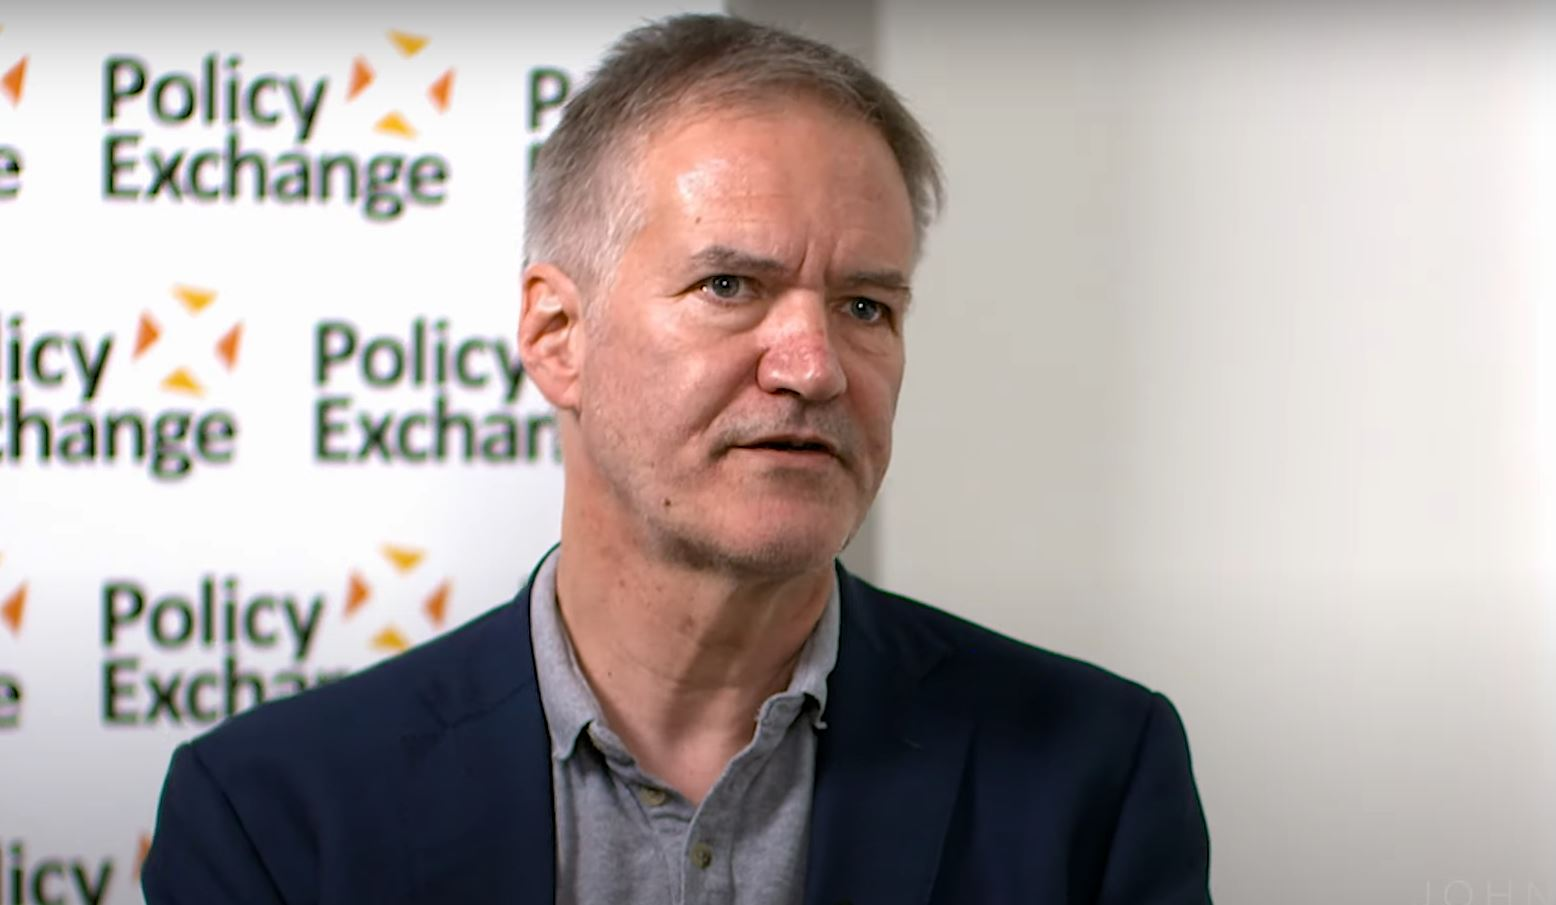 Appointment of Goodhart Undermines EHRC's Credibility